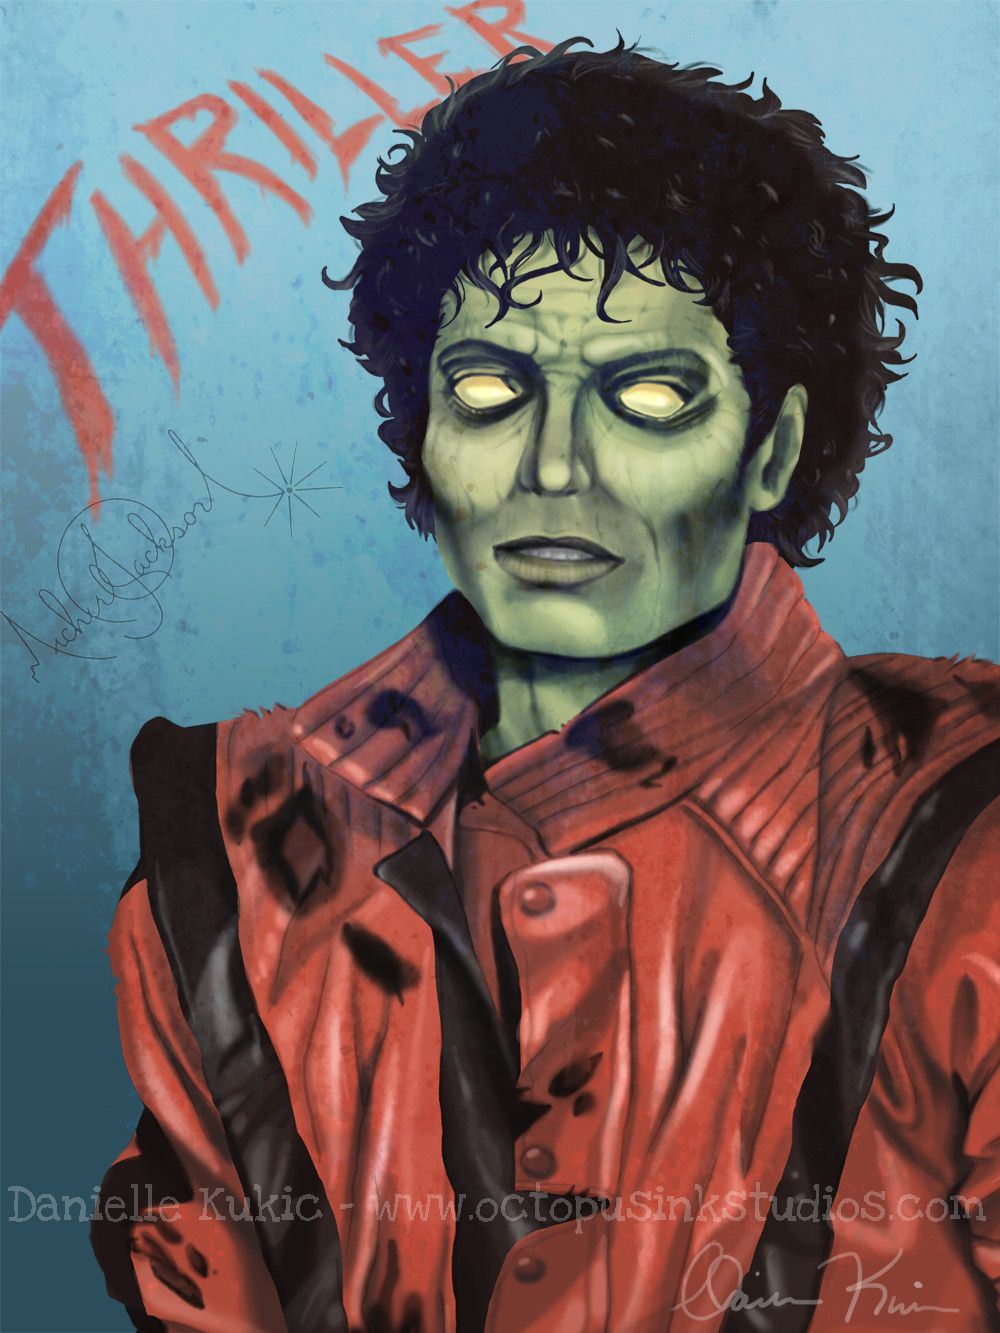 Michael Jackson Thriller Drawing : michael, jackson, thriller, drawing, Thriller, Zombie, Michael, Jackson, Images, Wallpapers, Zombie,